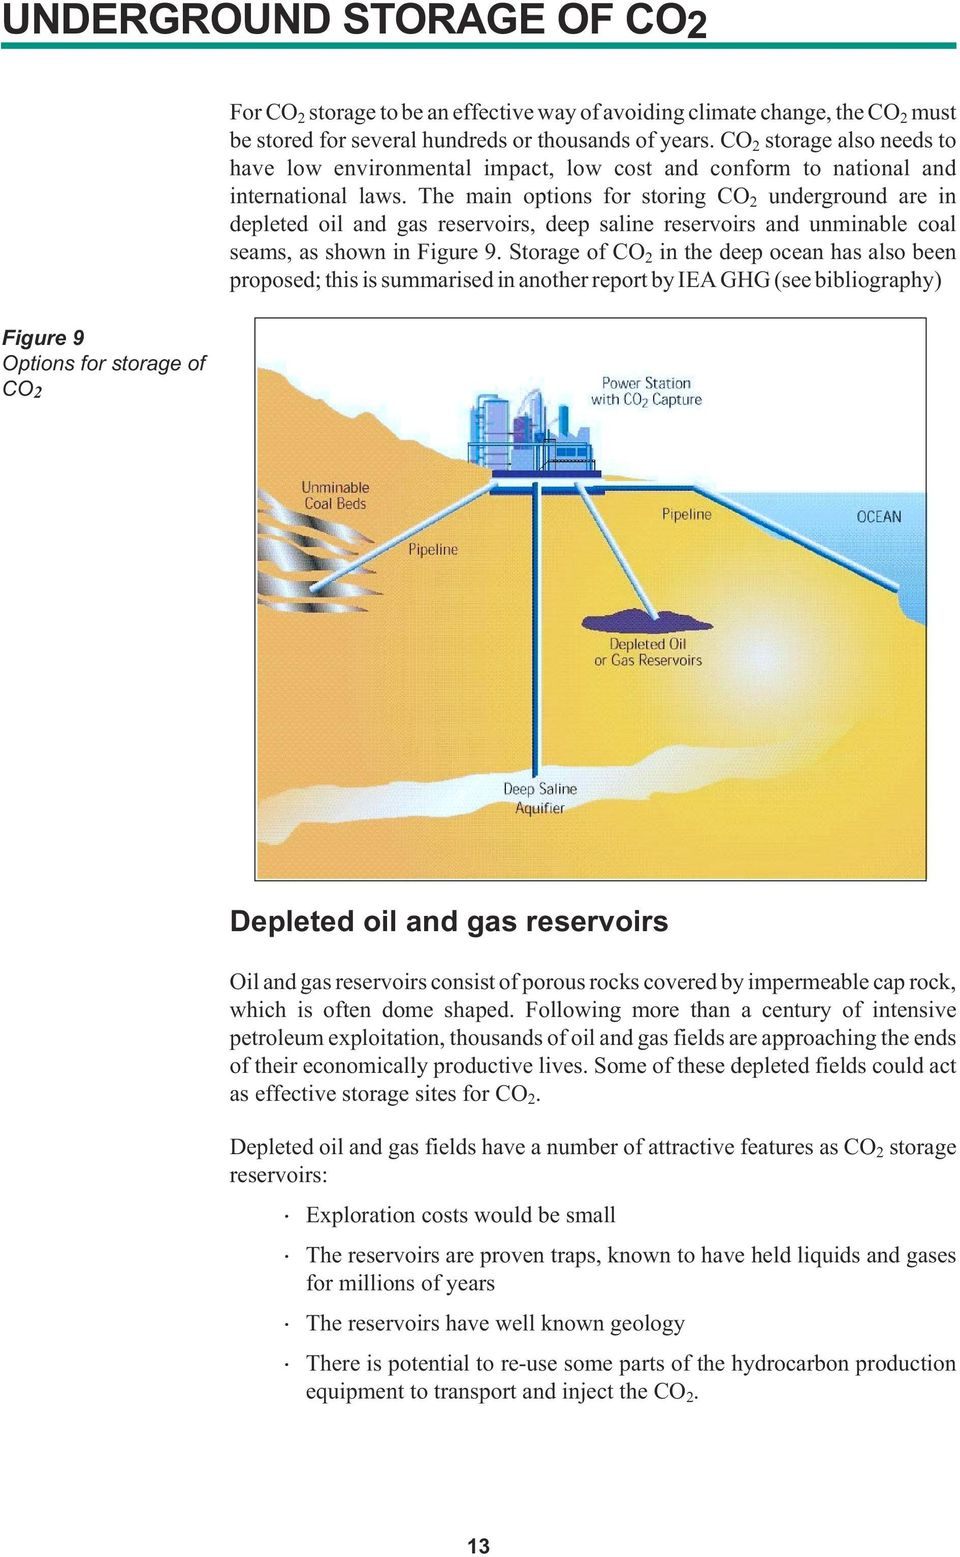 The main options for storing CO 2 underground are in depleted oil and gas reservoirs, deep saline reservoirs and unminable coal seams, as shown in Figure 9.